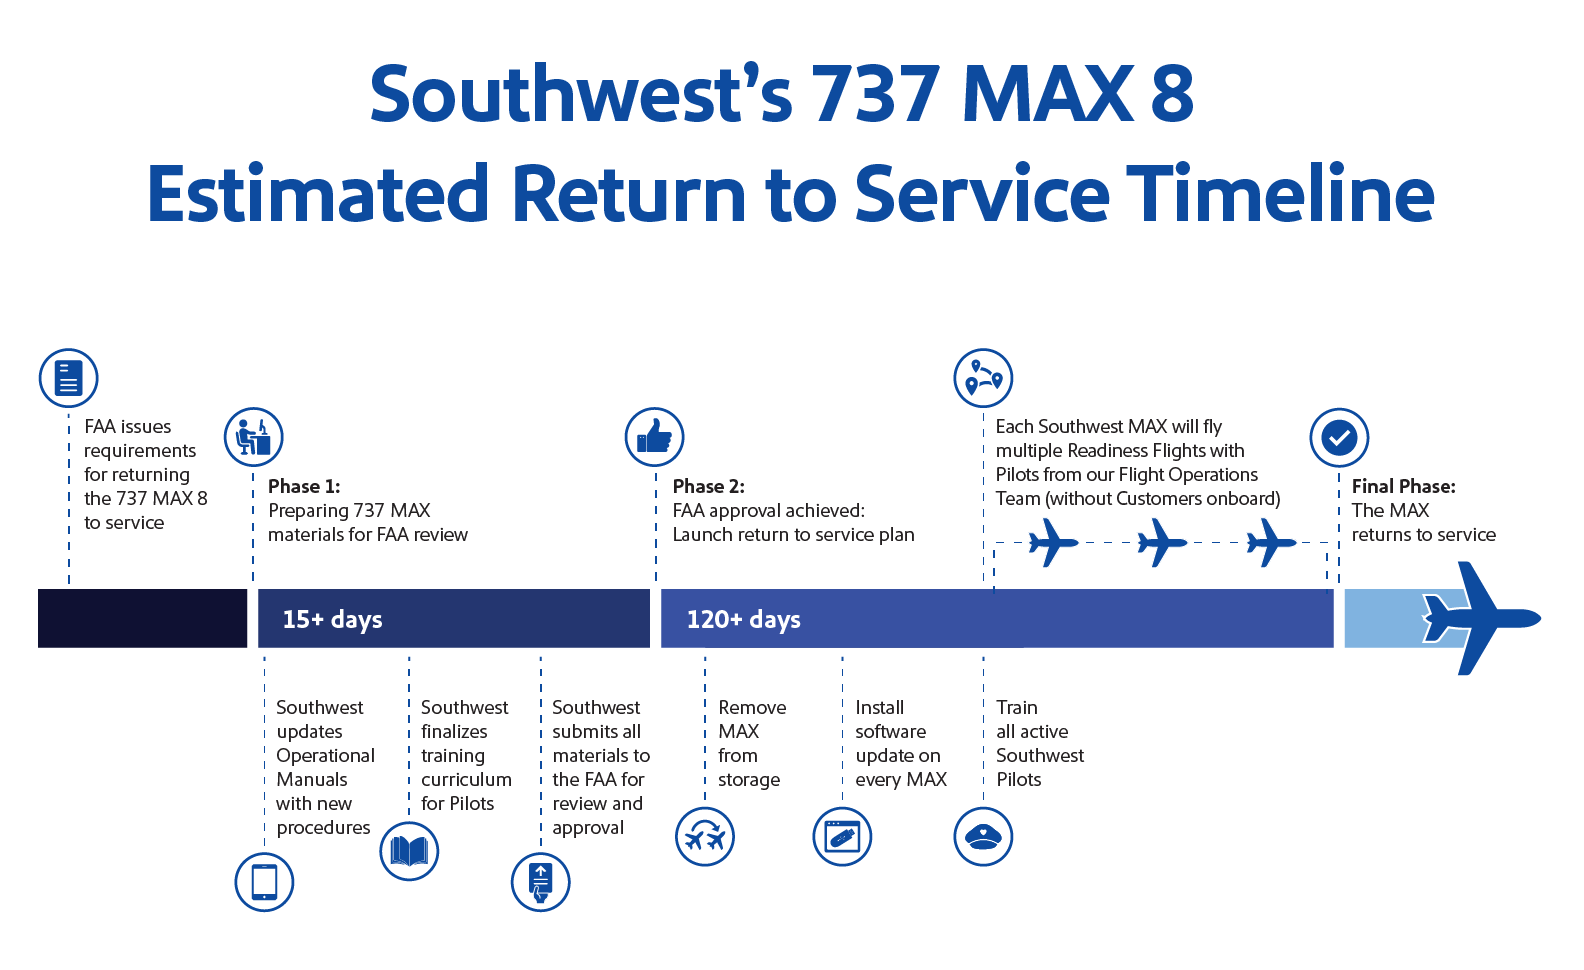 Southwest Airlines Estimated 737 MAX 8 Return to Service Timeline